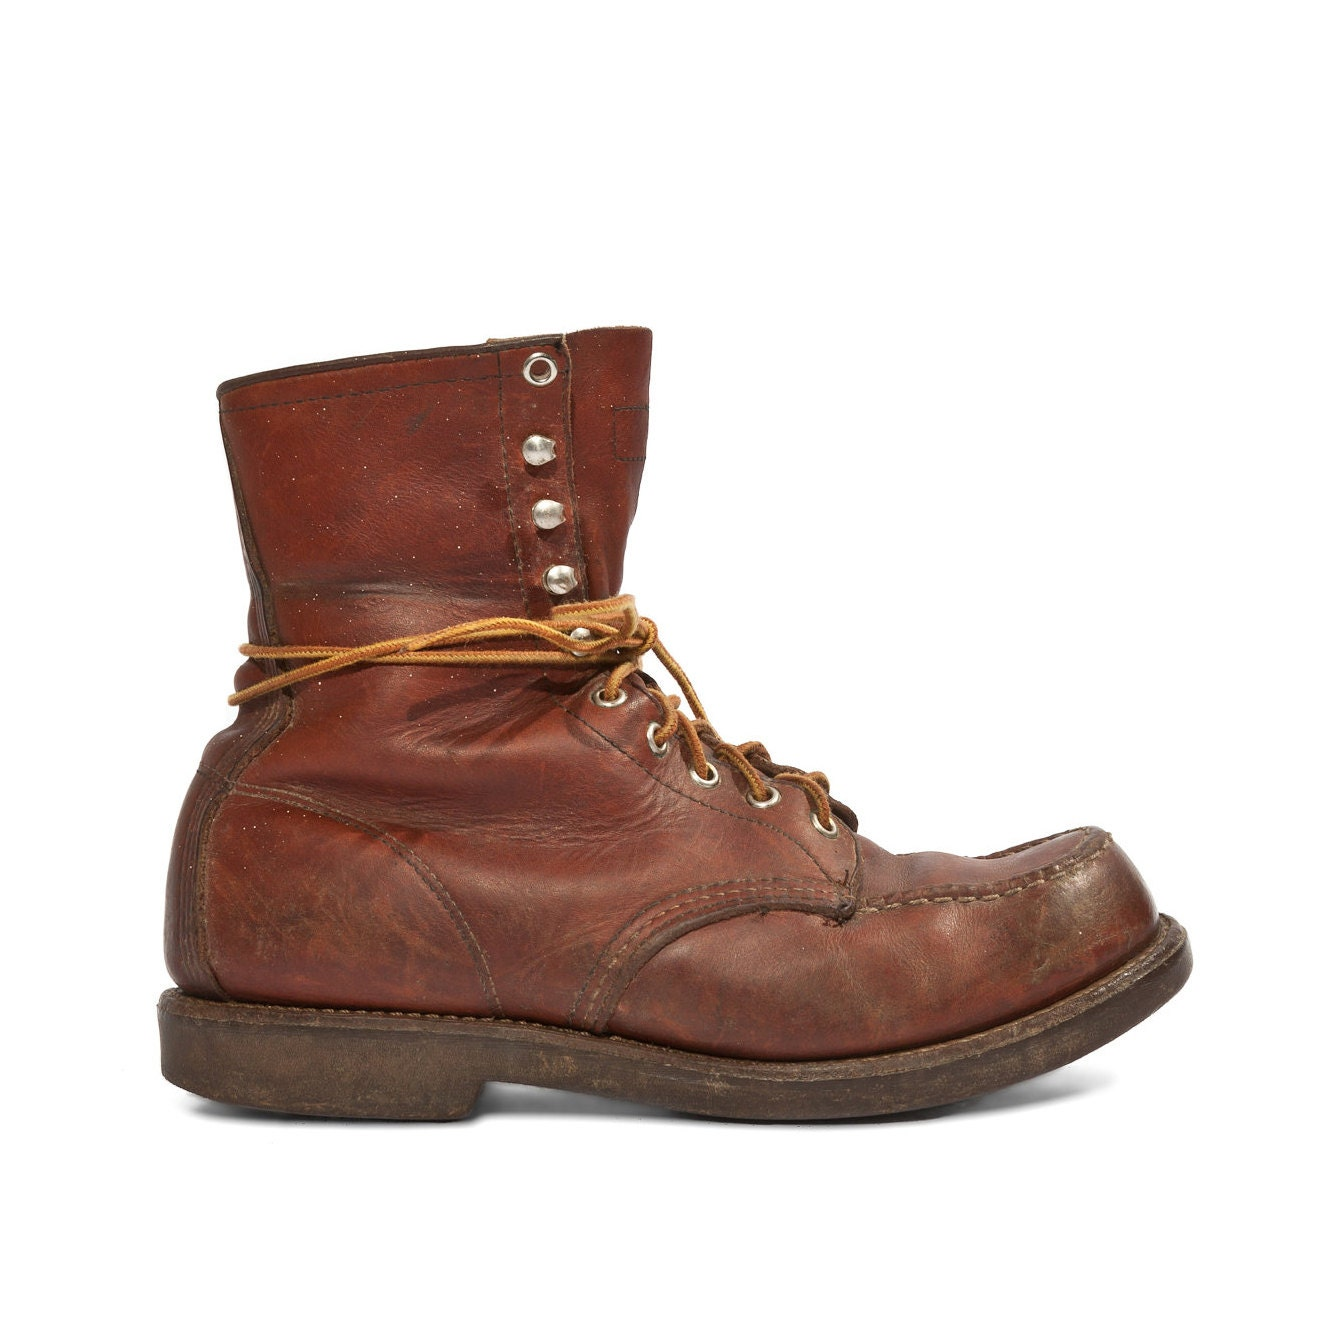 Red Wing Steel Toe Boots For Men - Cr Boot